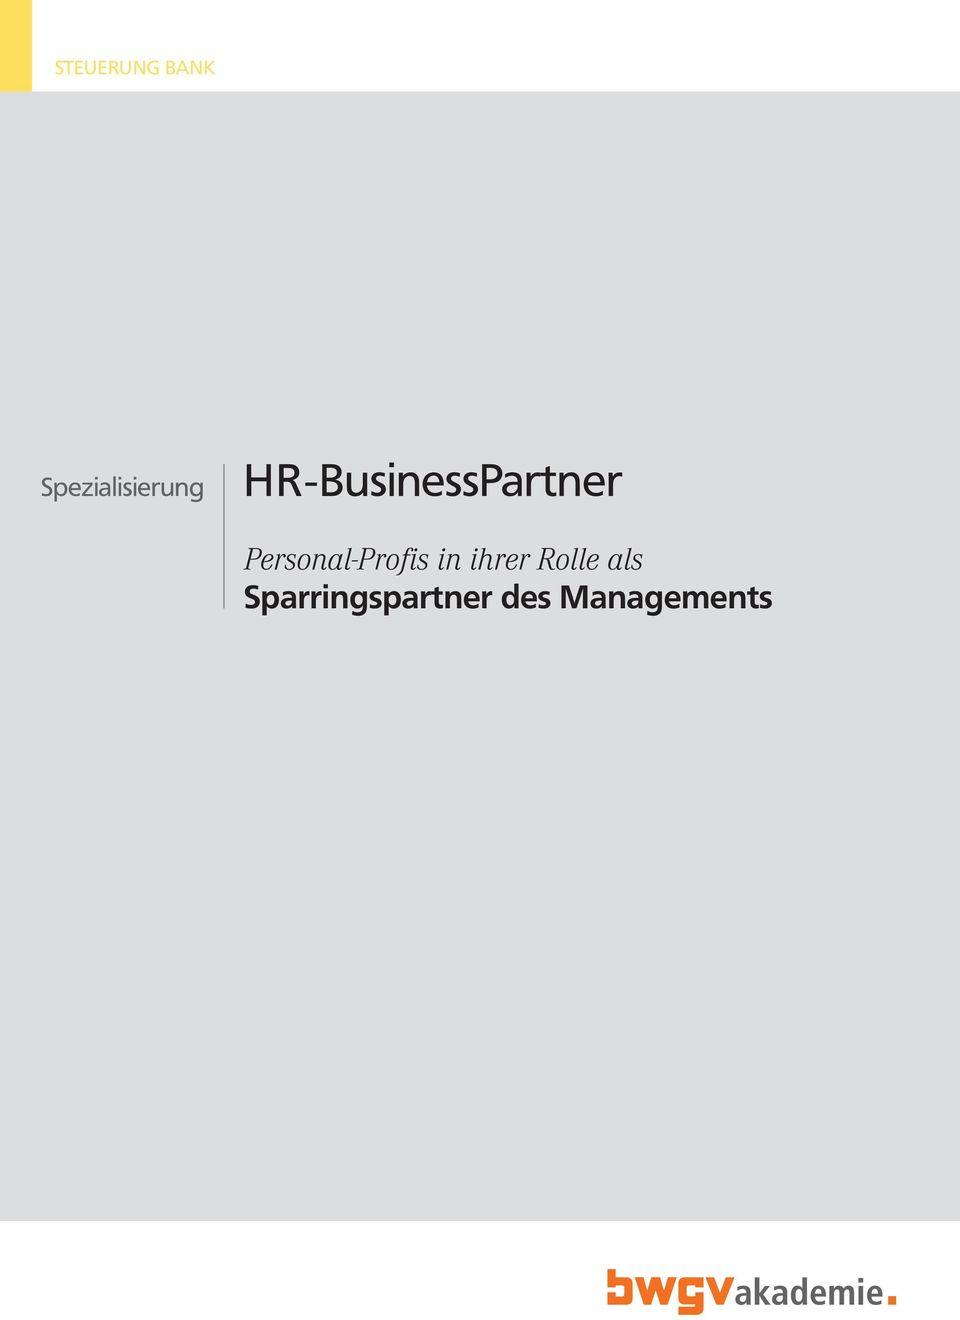 HR-BusinessPartner